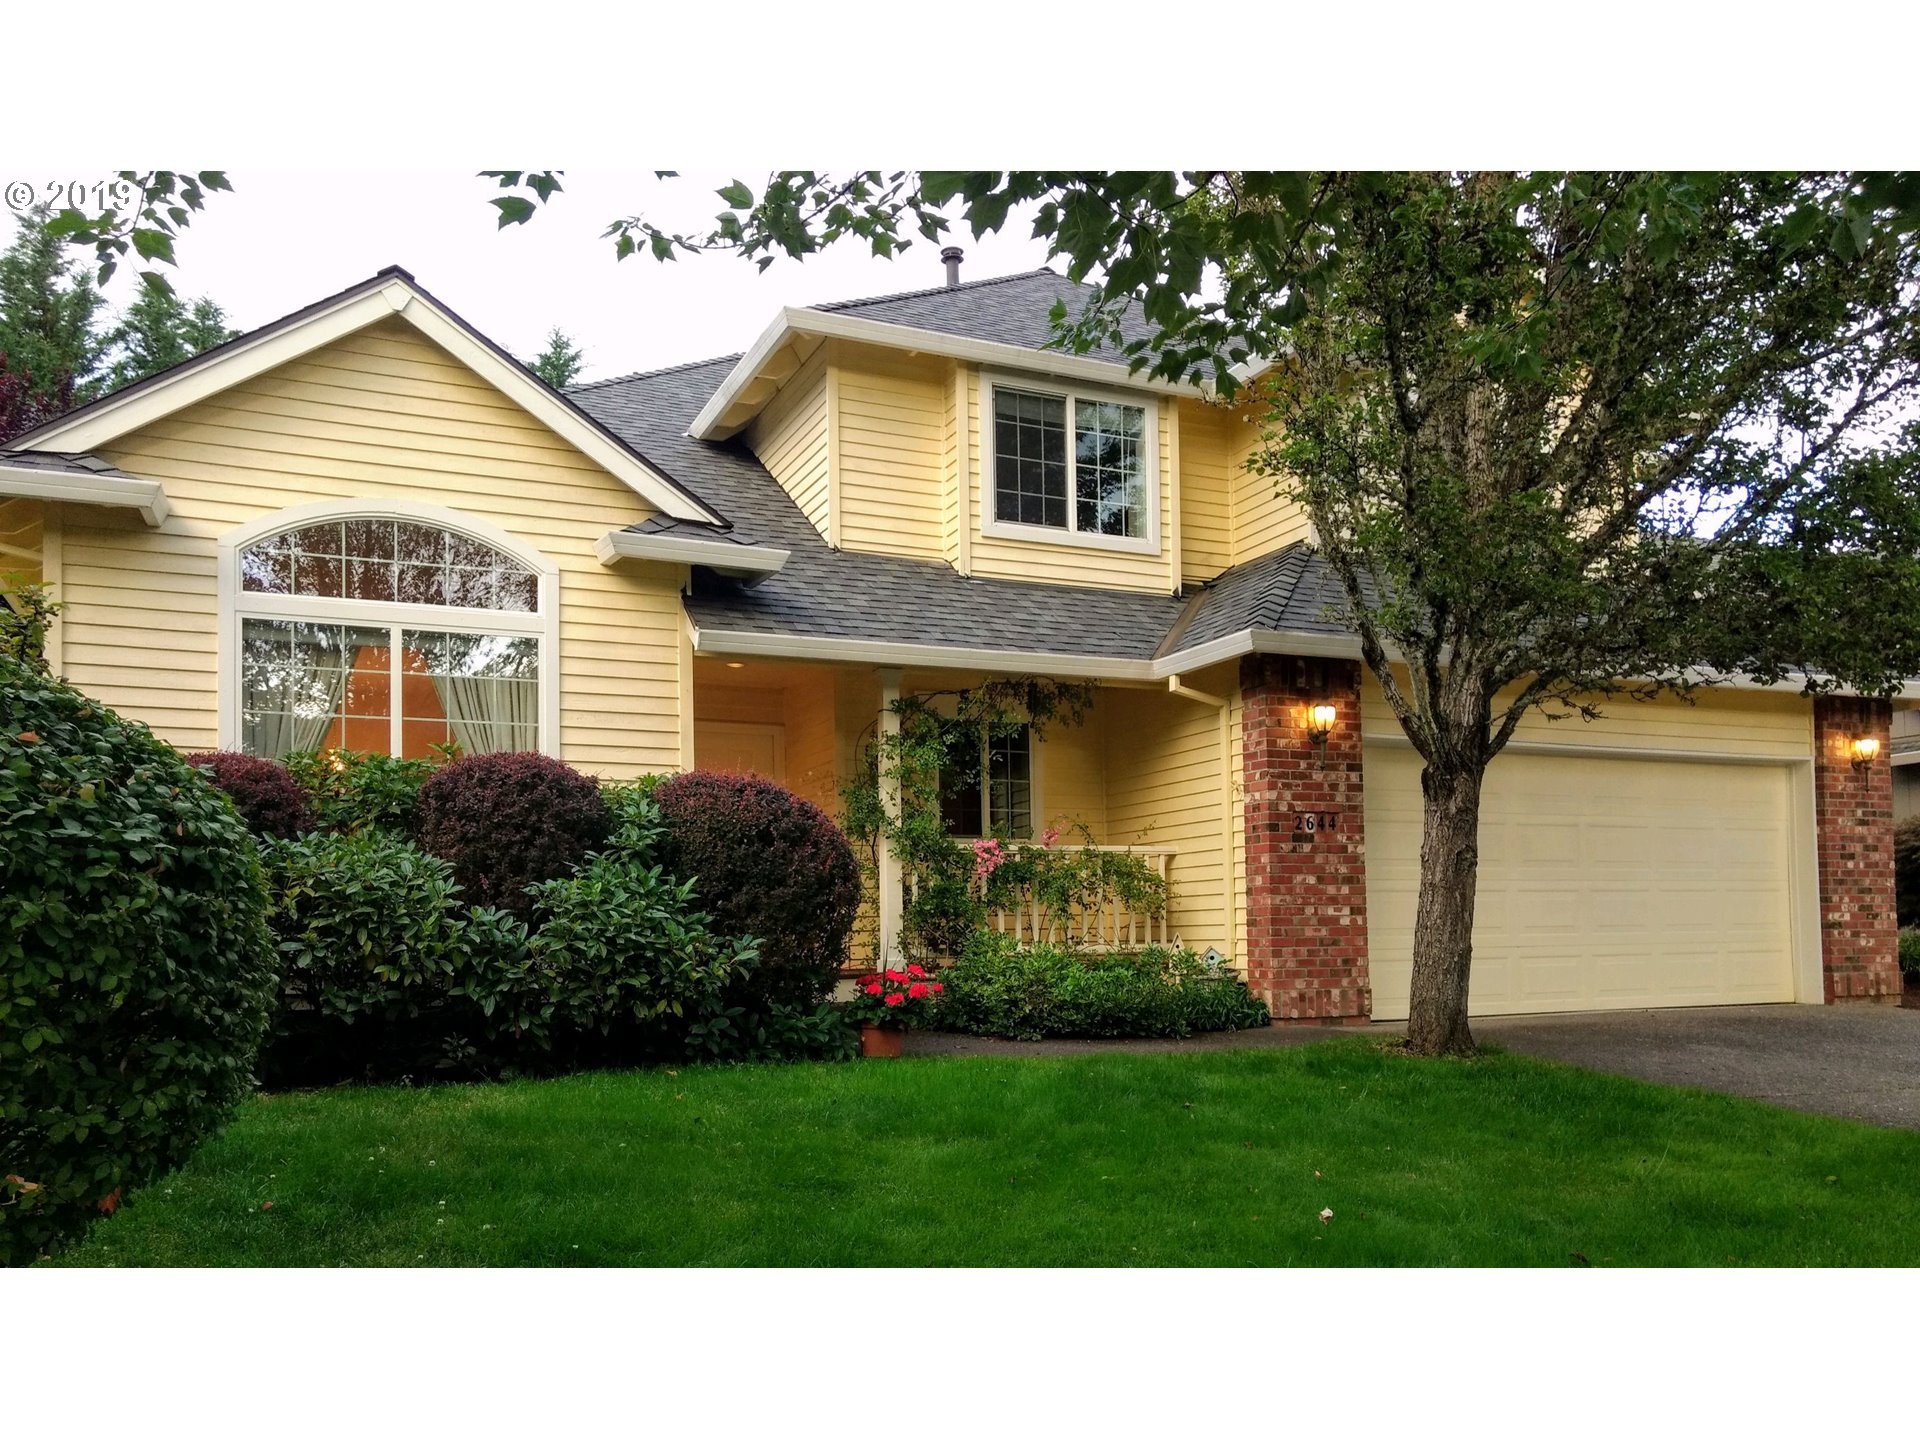 2644 NE 2ND DR, Hillsboro OR 97124